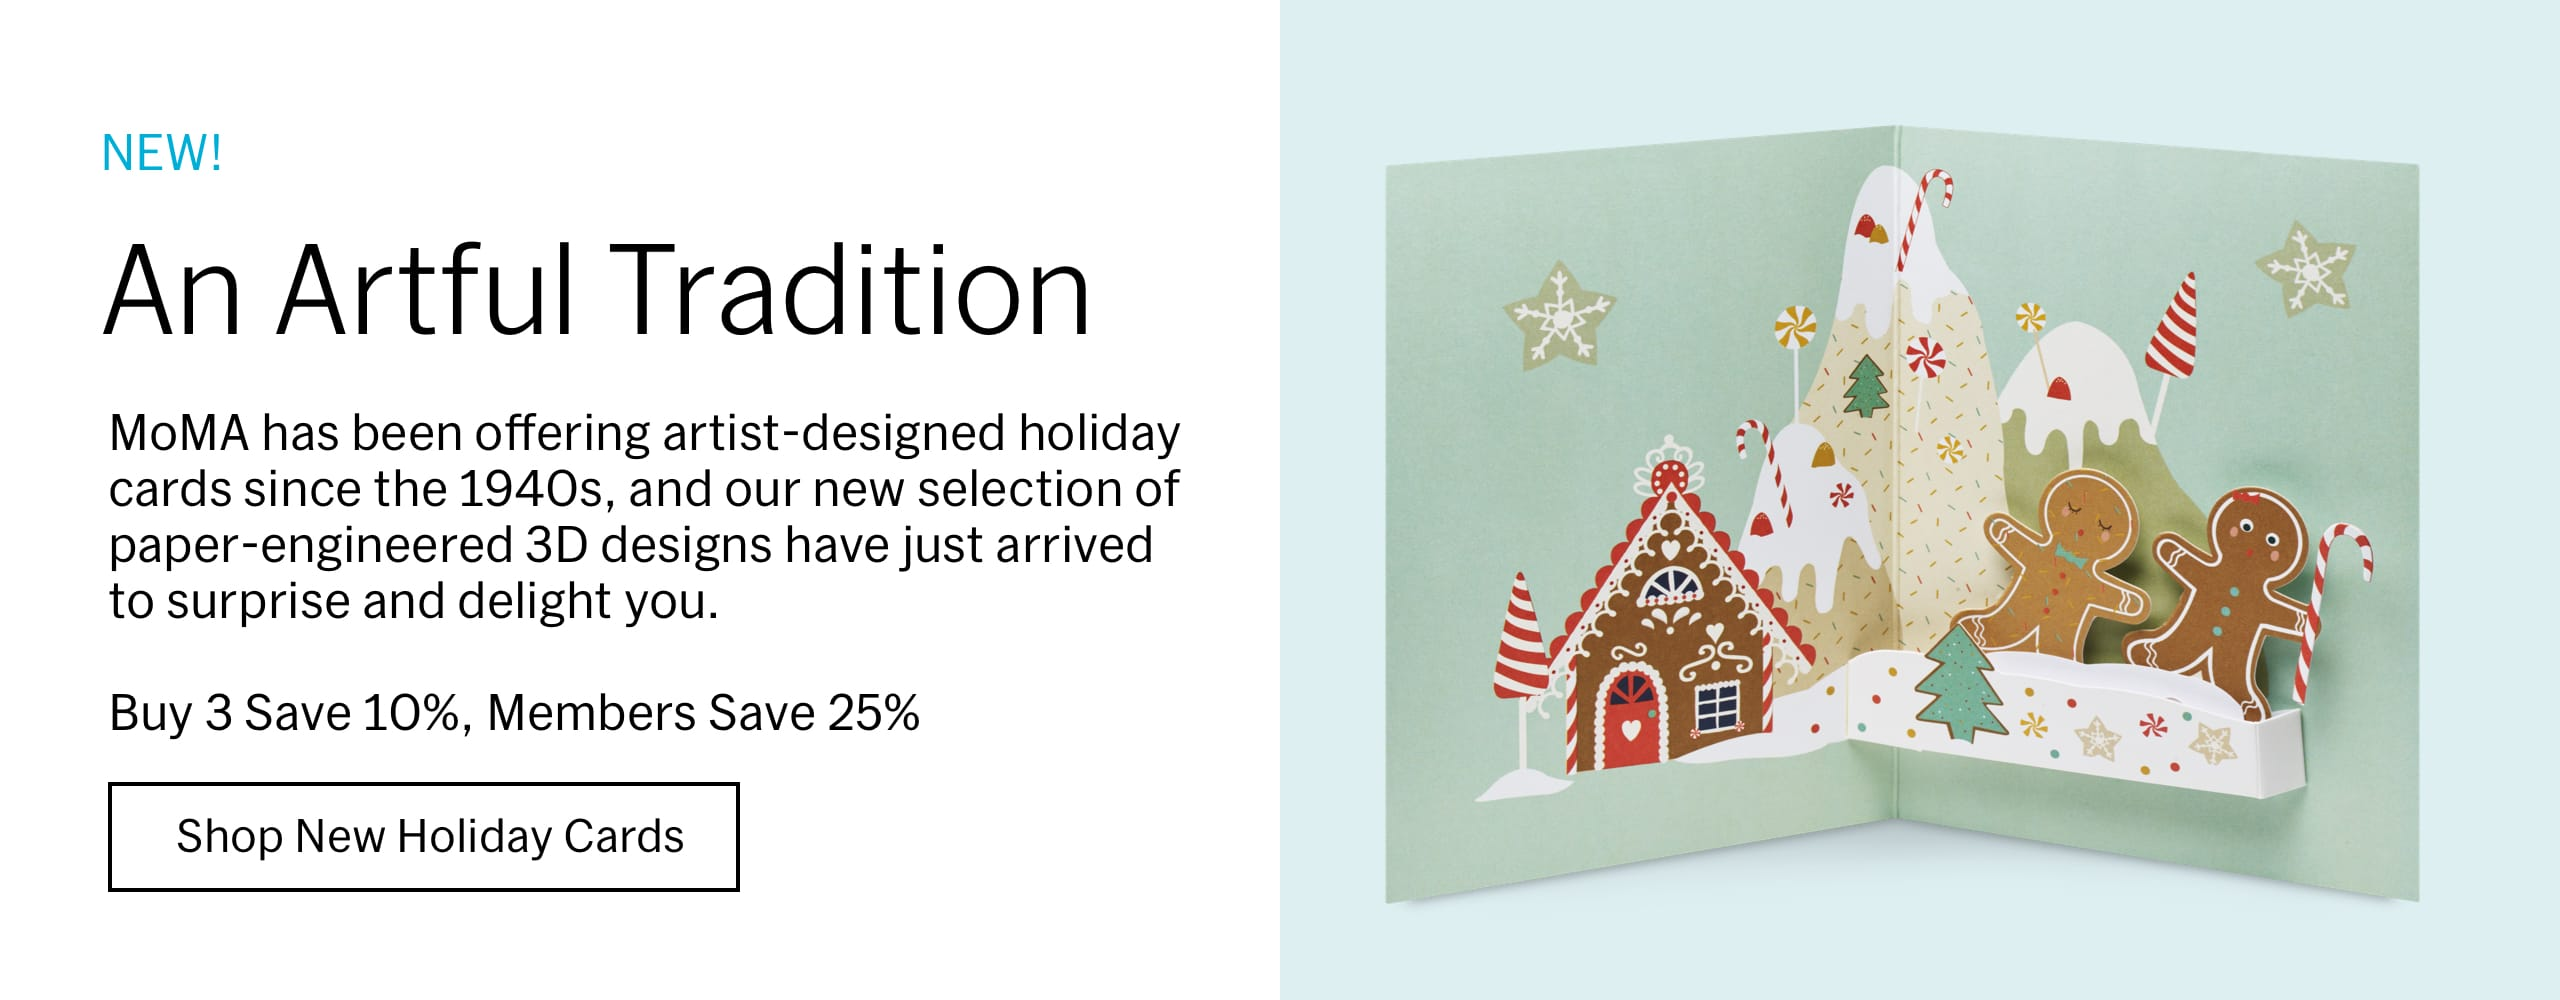 Shop New Holiday Cards